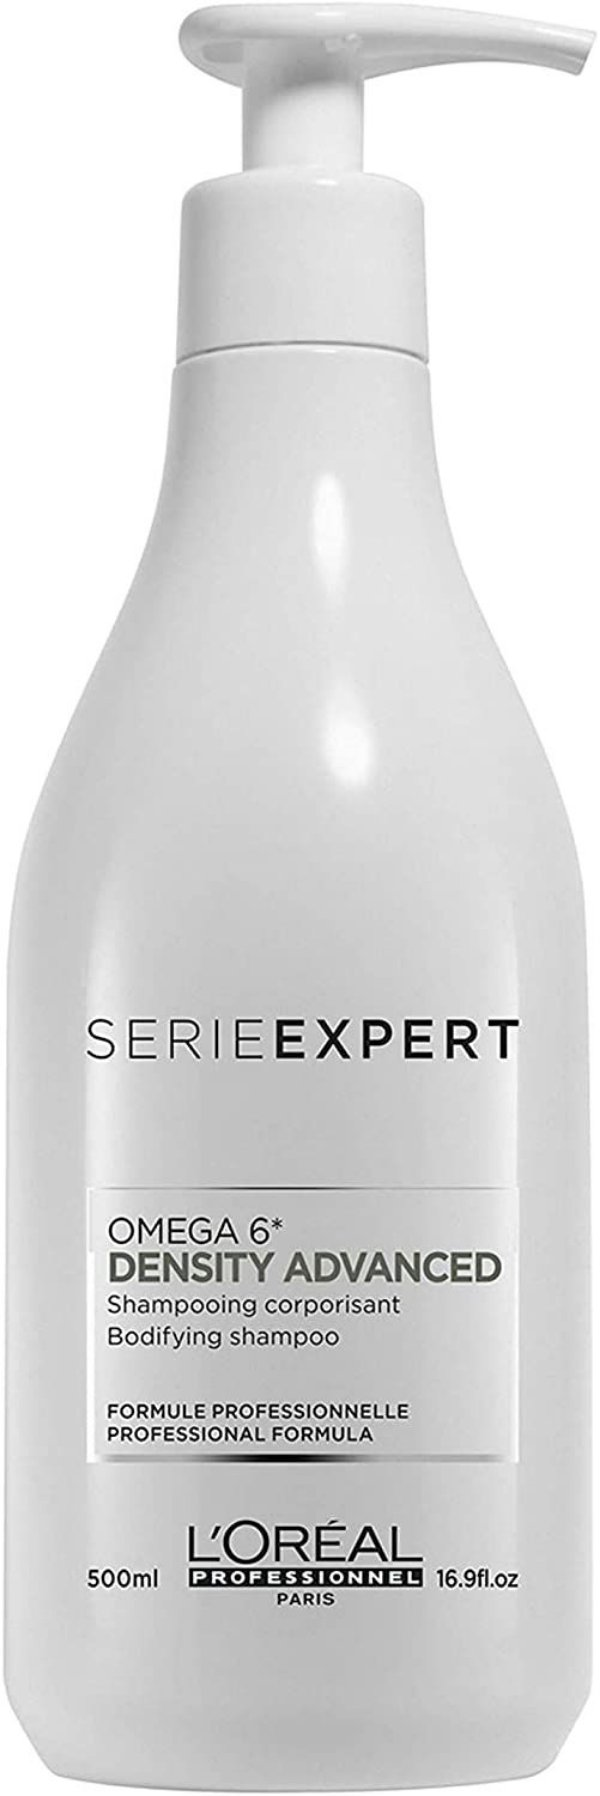 Shampoo Loreal Professionnel Density Advanced 500ml